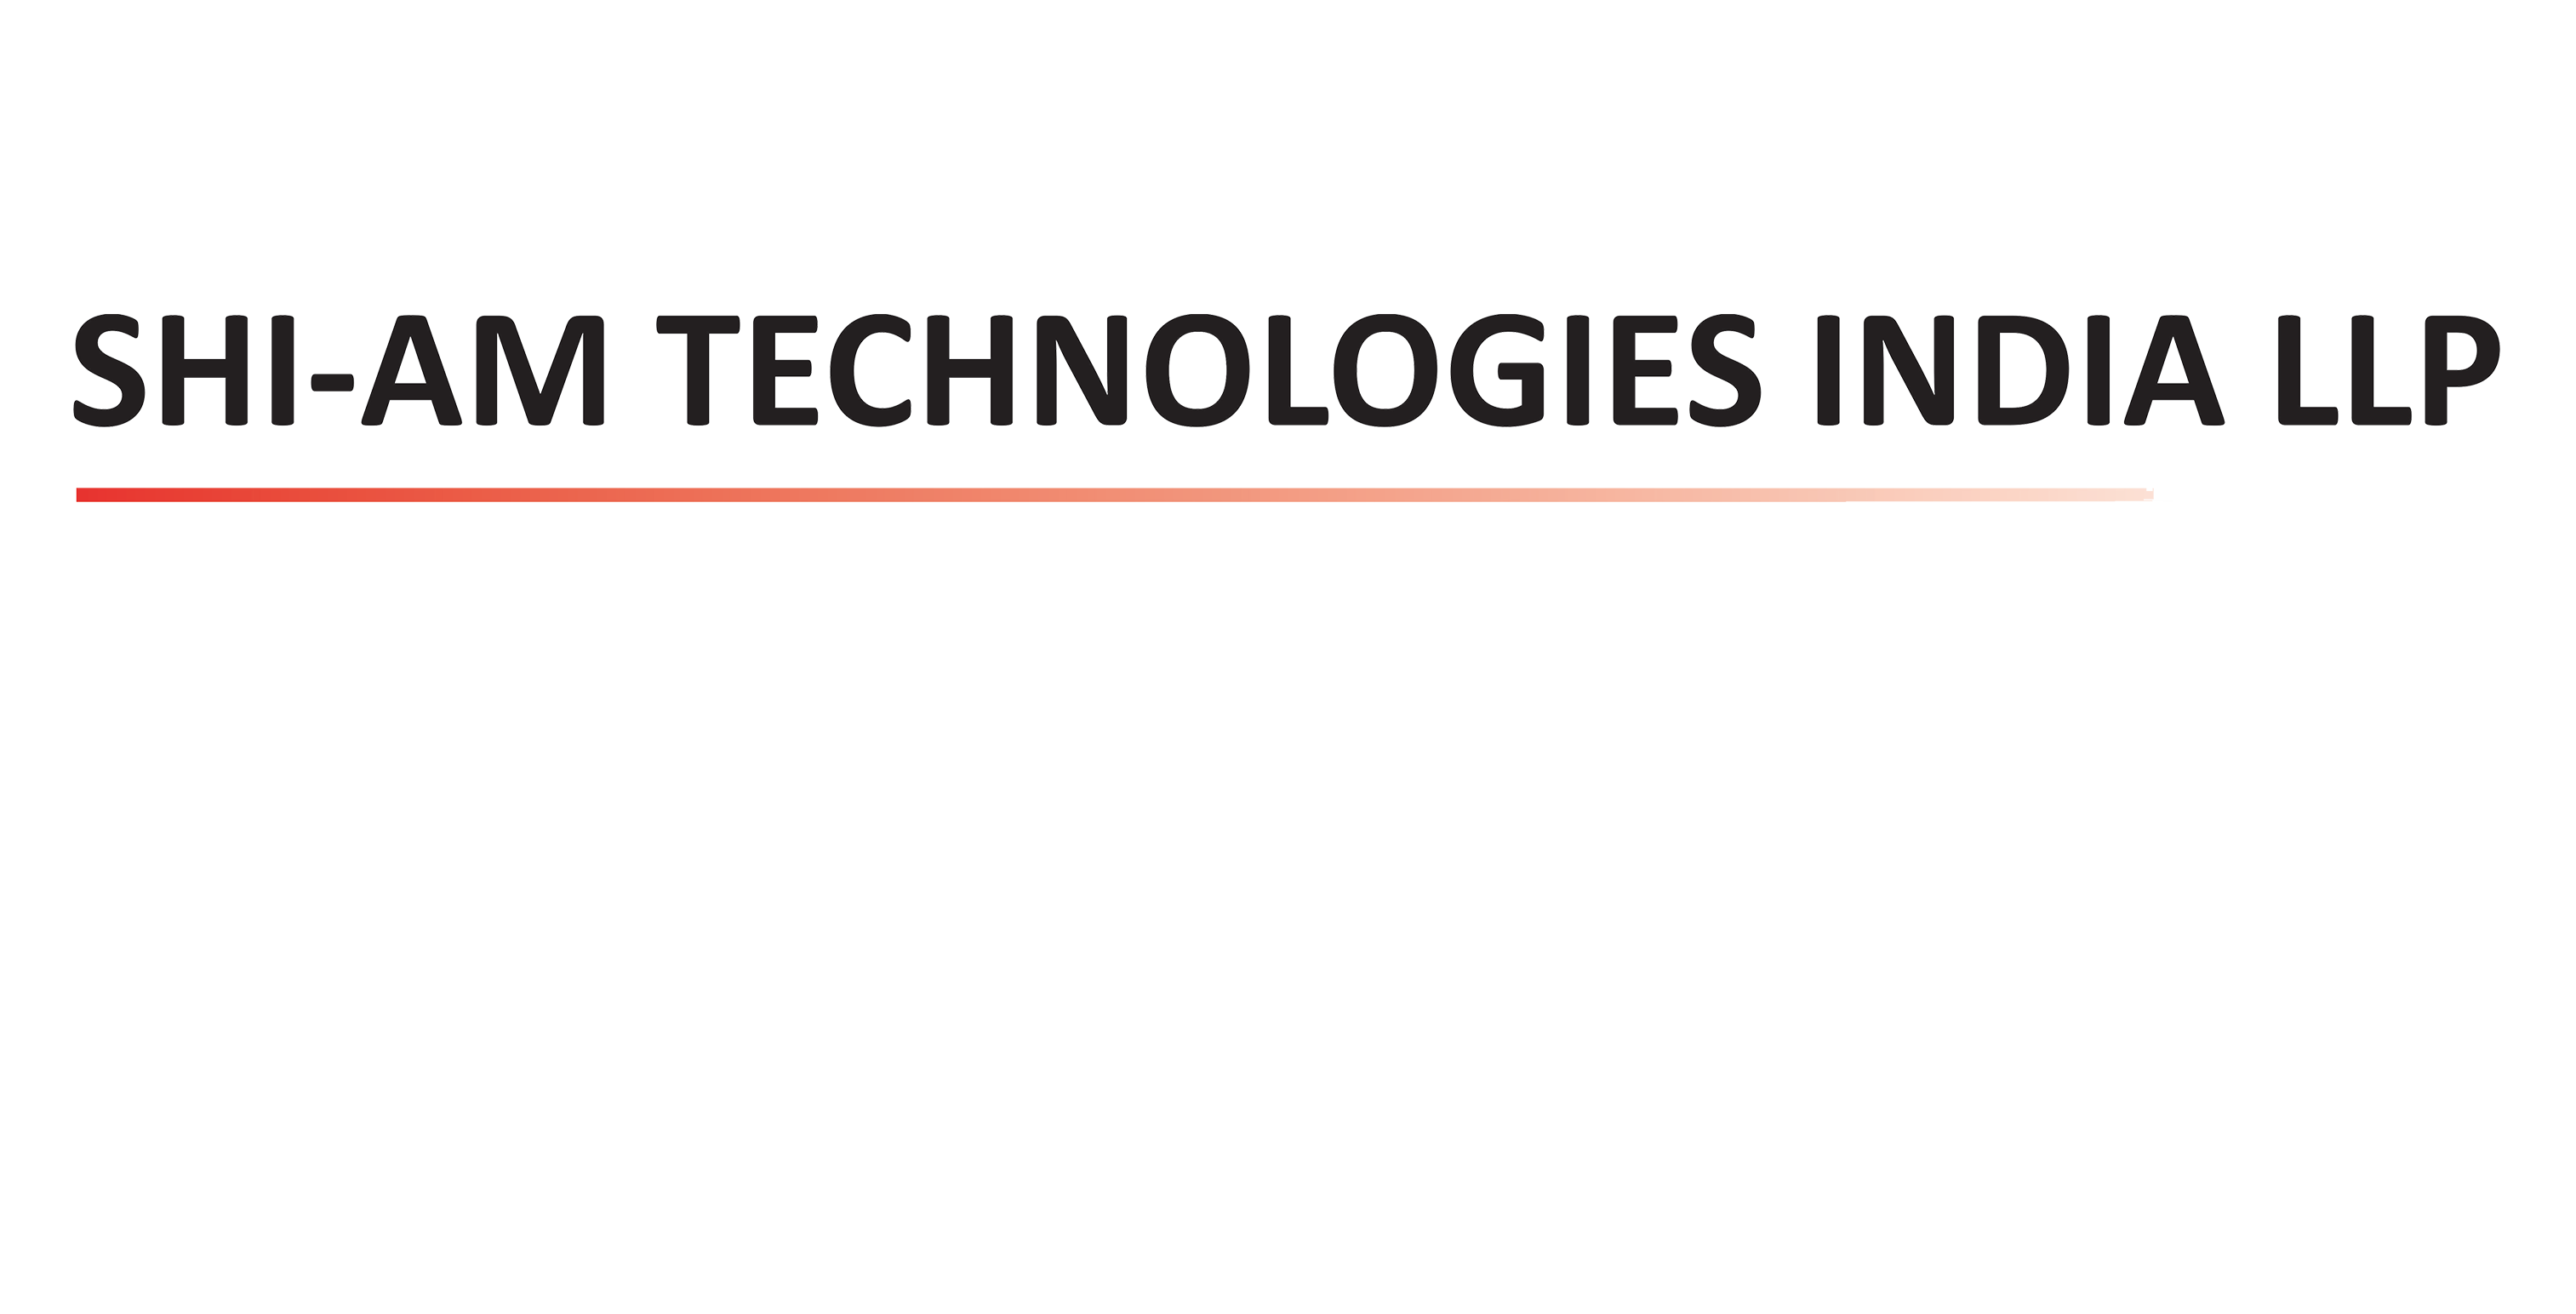 SHIAM TECHNOLOGIES INDIA LLP